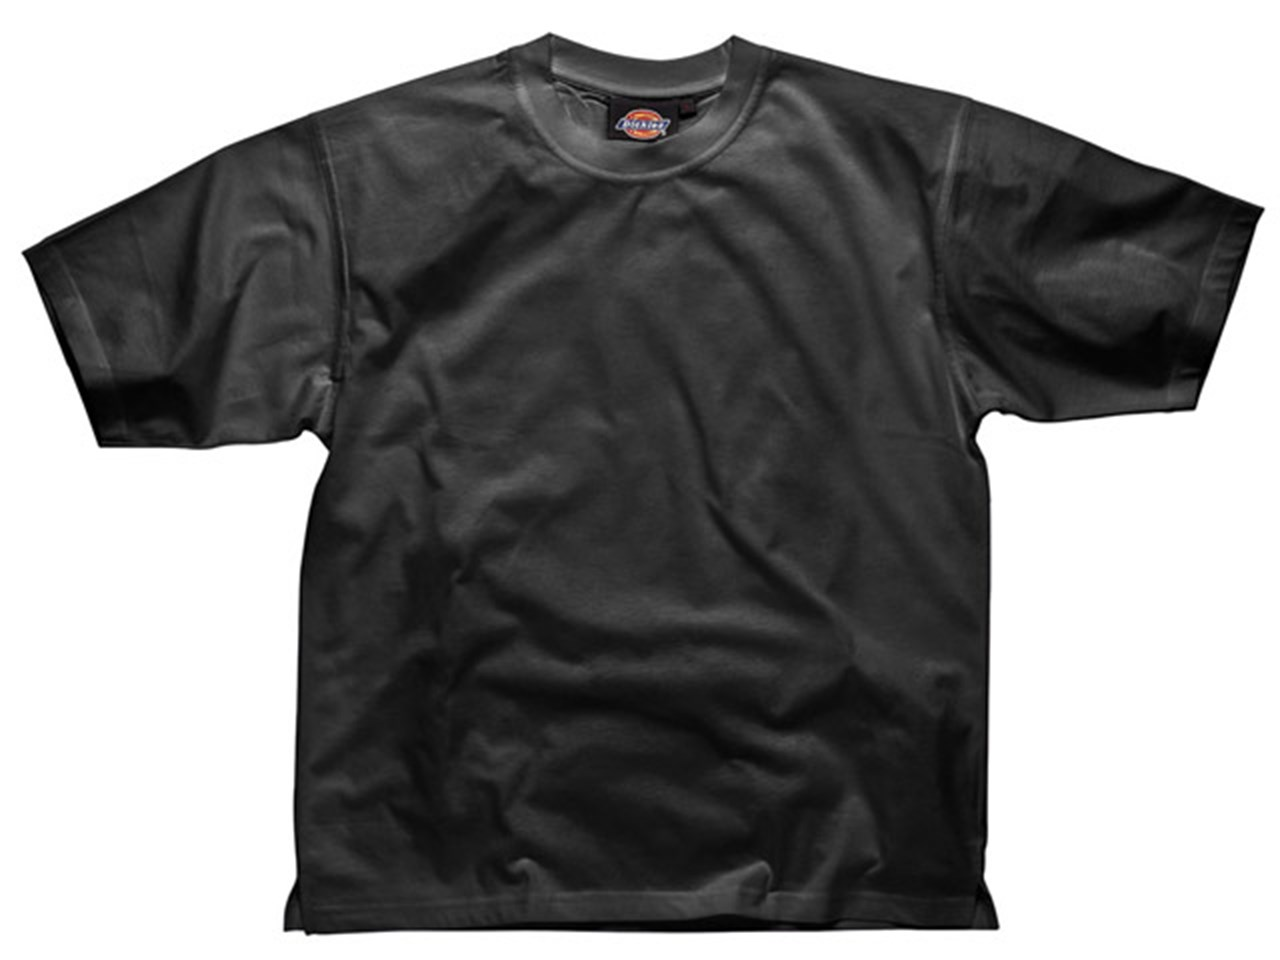 b572411ba16b Dickies SH34225 BK 3XL Cotton T-Shirt Black XXXL